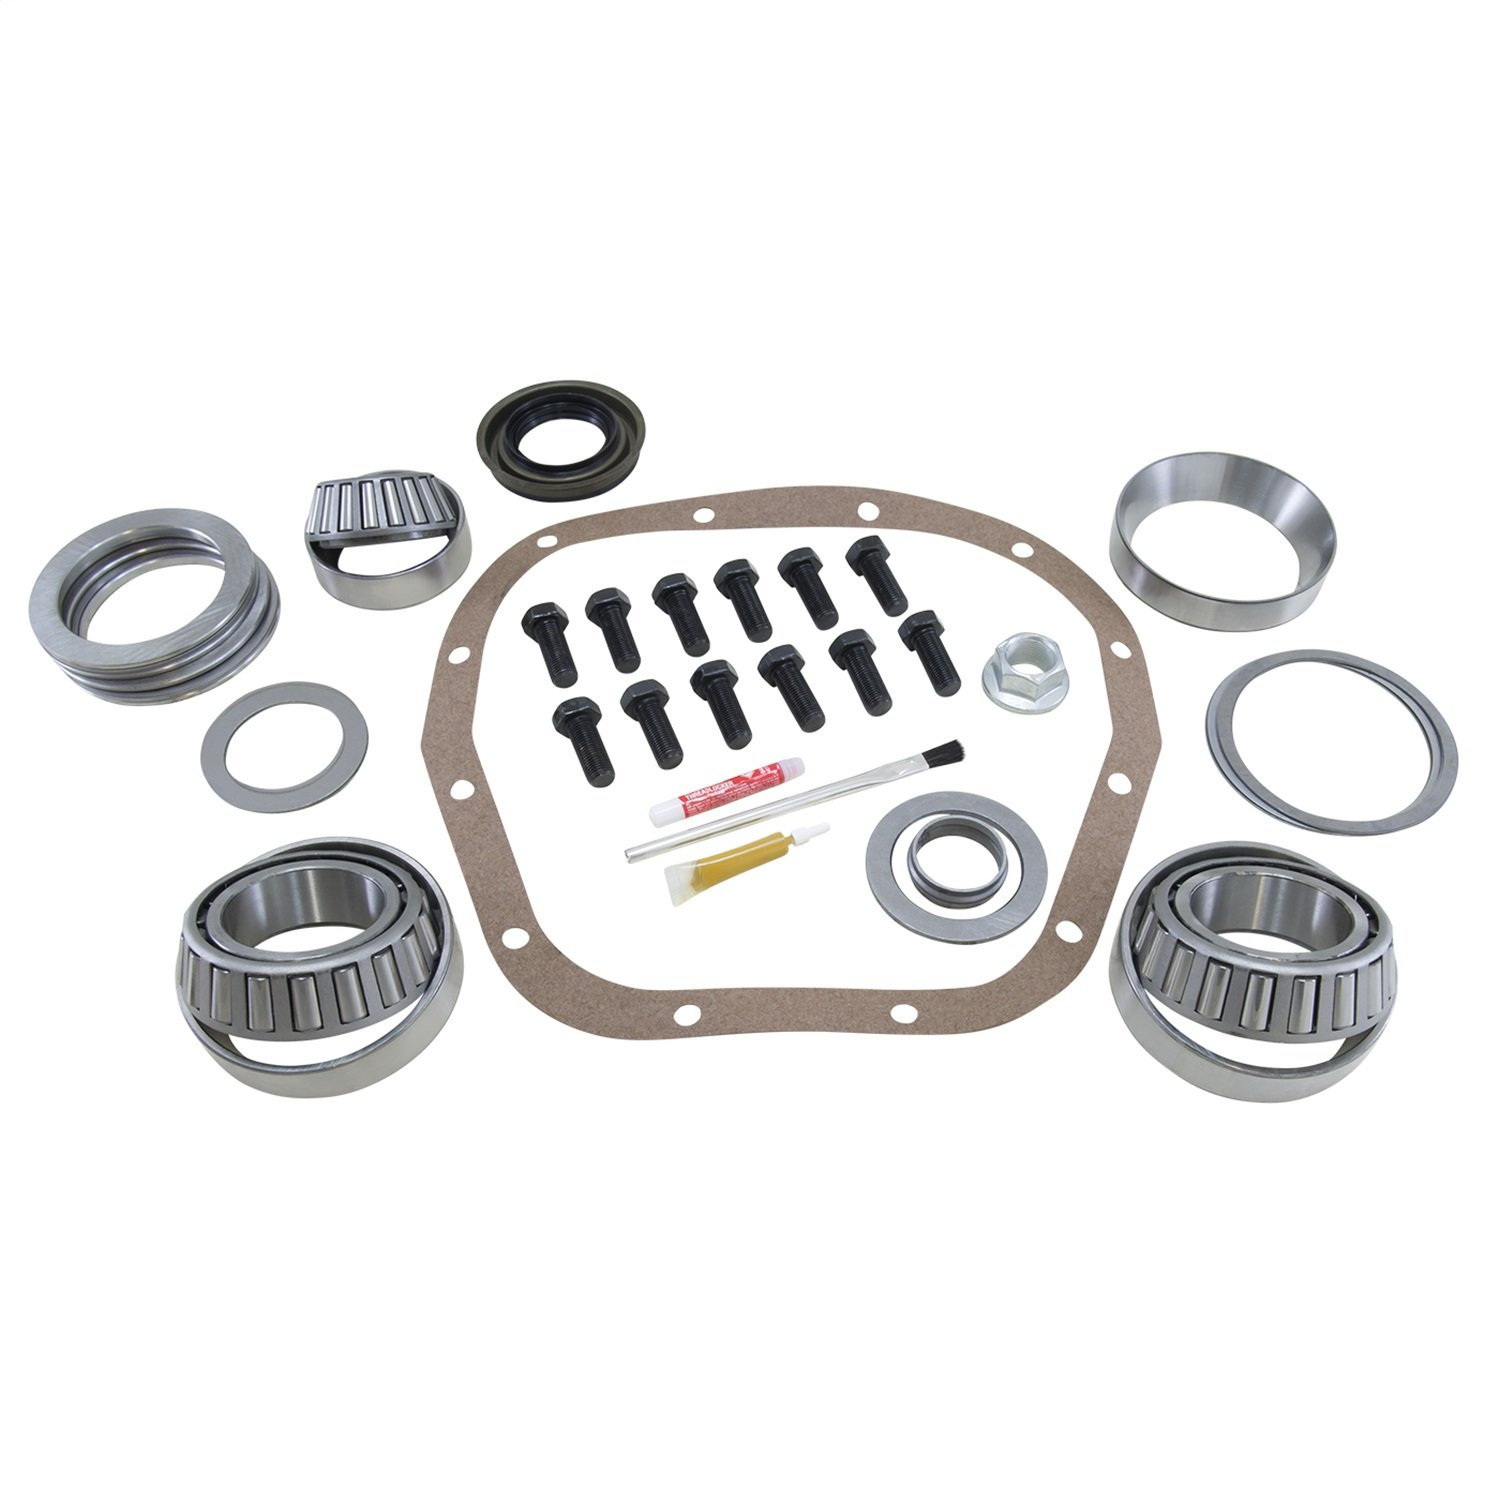 USA Standard Gear (ZK F10.5-A) Master Overhaul Kit for Ford 10.5 Differential